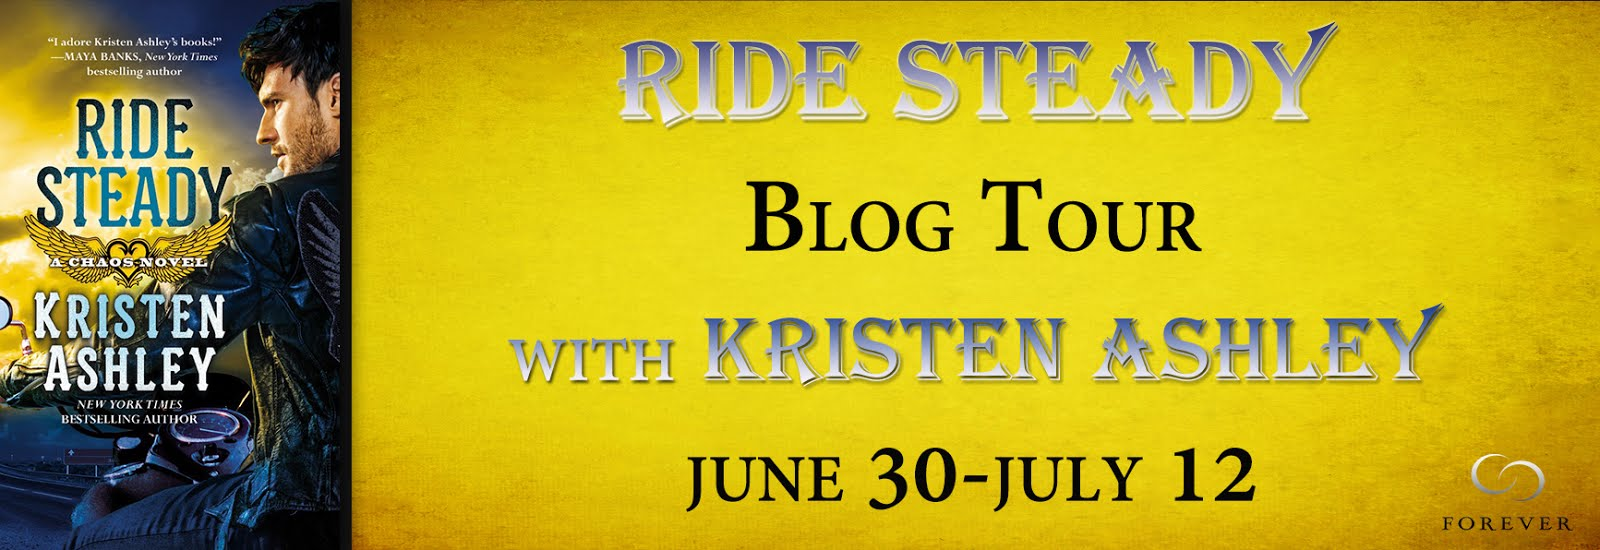 Ride Steady Tour